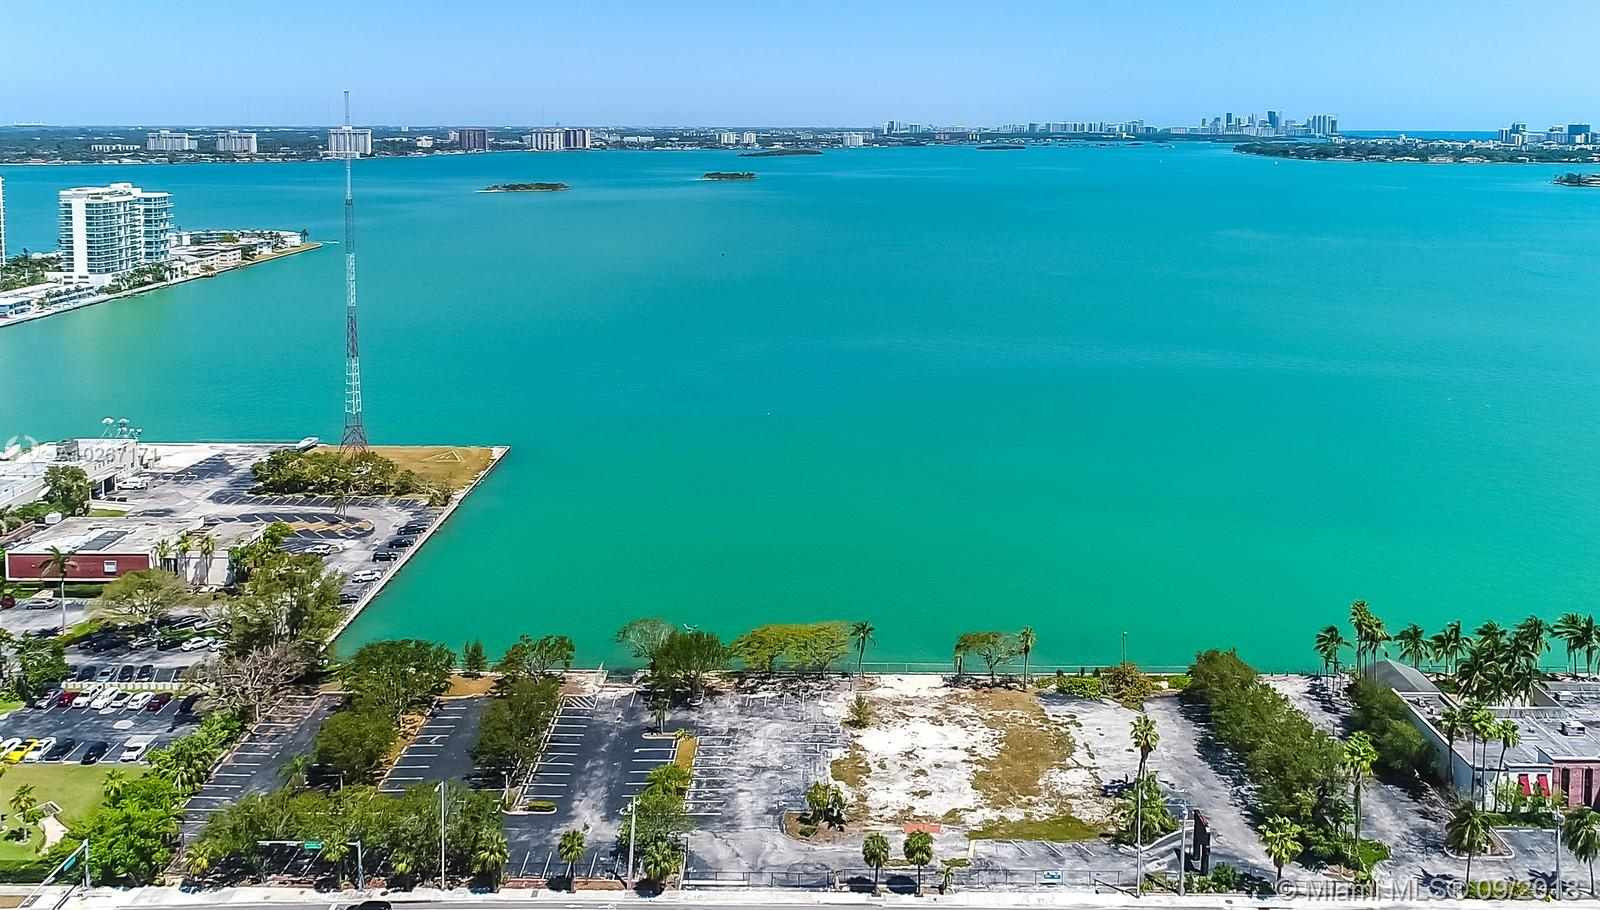 Open Wide Bay Front Spectacular View!<Br />Waterfront Lot, Almost 2 Acres. Open Bay View. Mixed Use Lot In North Bay Village.<Br />Project, Residential, Offices And Retails. All Plans Approved. Call Us For More Information.